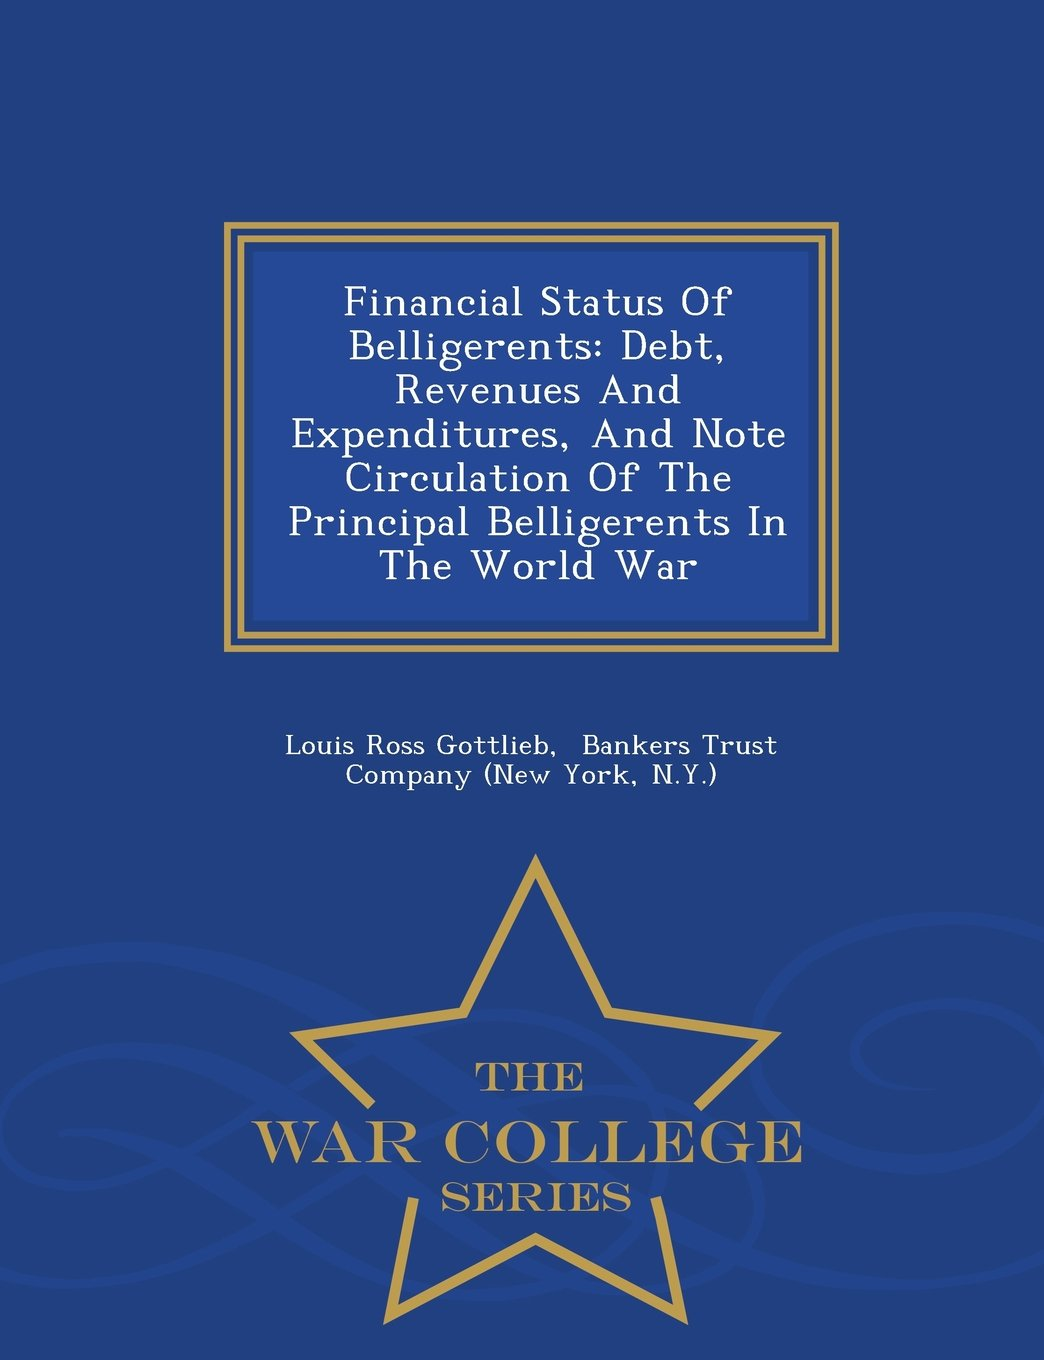 Read Online Financial Status Of Belligerents: Debt, Revenues And Expenditures, And Note Circulation Of The Principal Belligerents In The World War - War College Series PDF